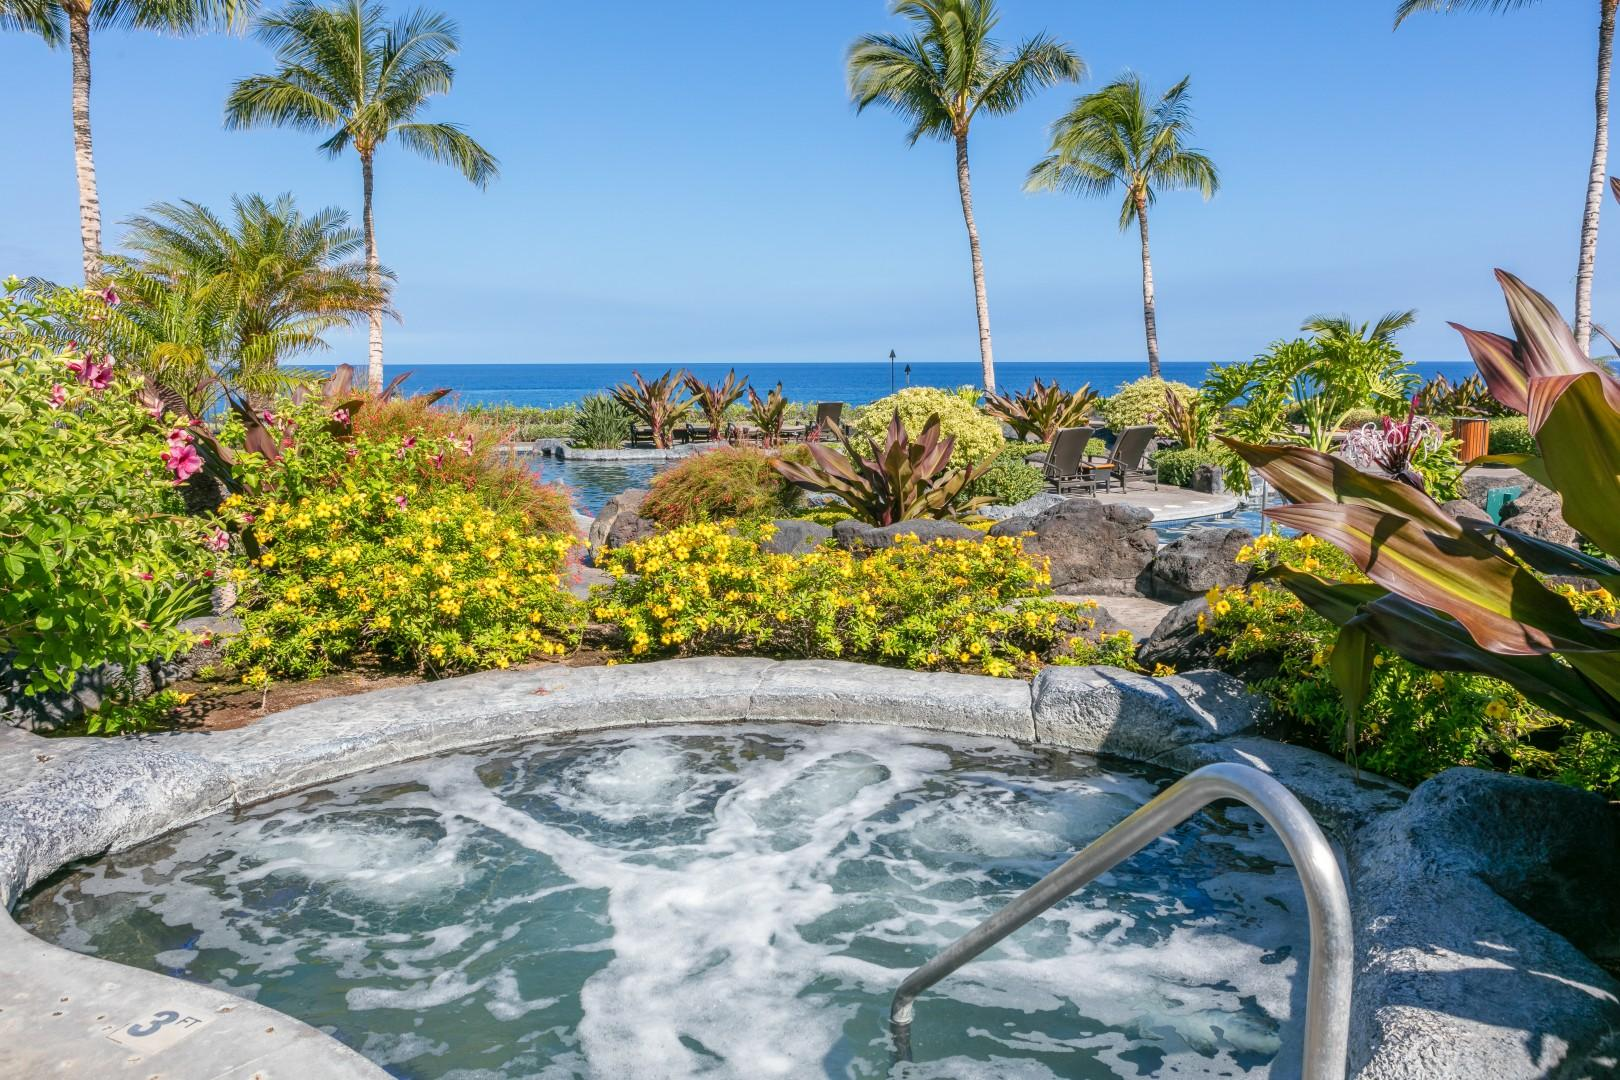 Take a dip in the jacuzzi to ease your muscles after an island hike or gaze at the sunset with your favorite beverage.